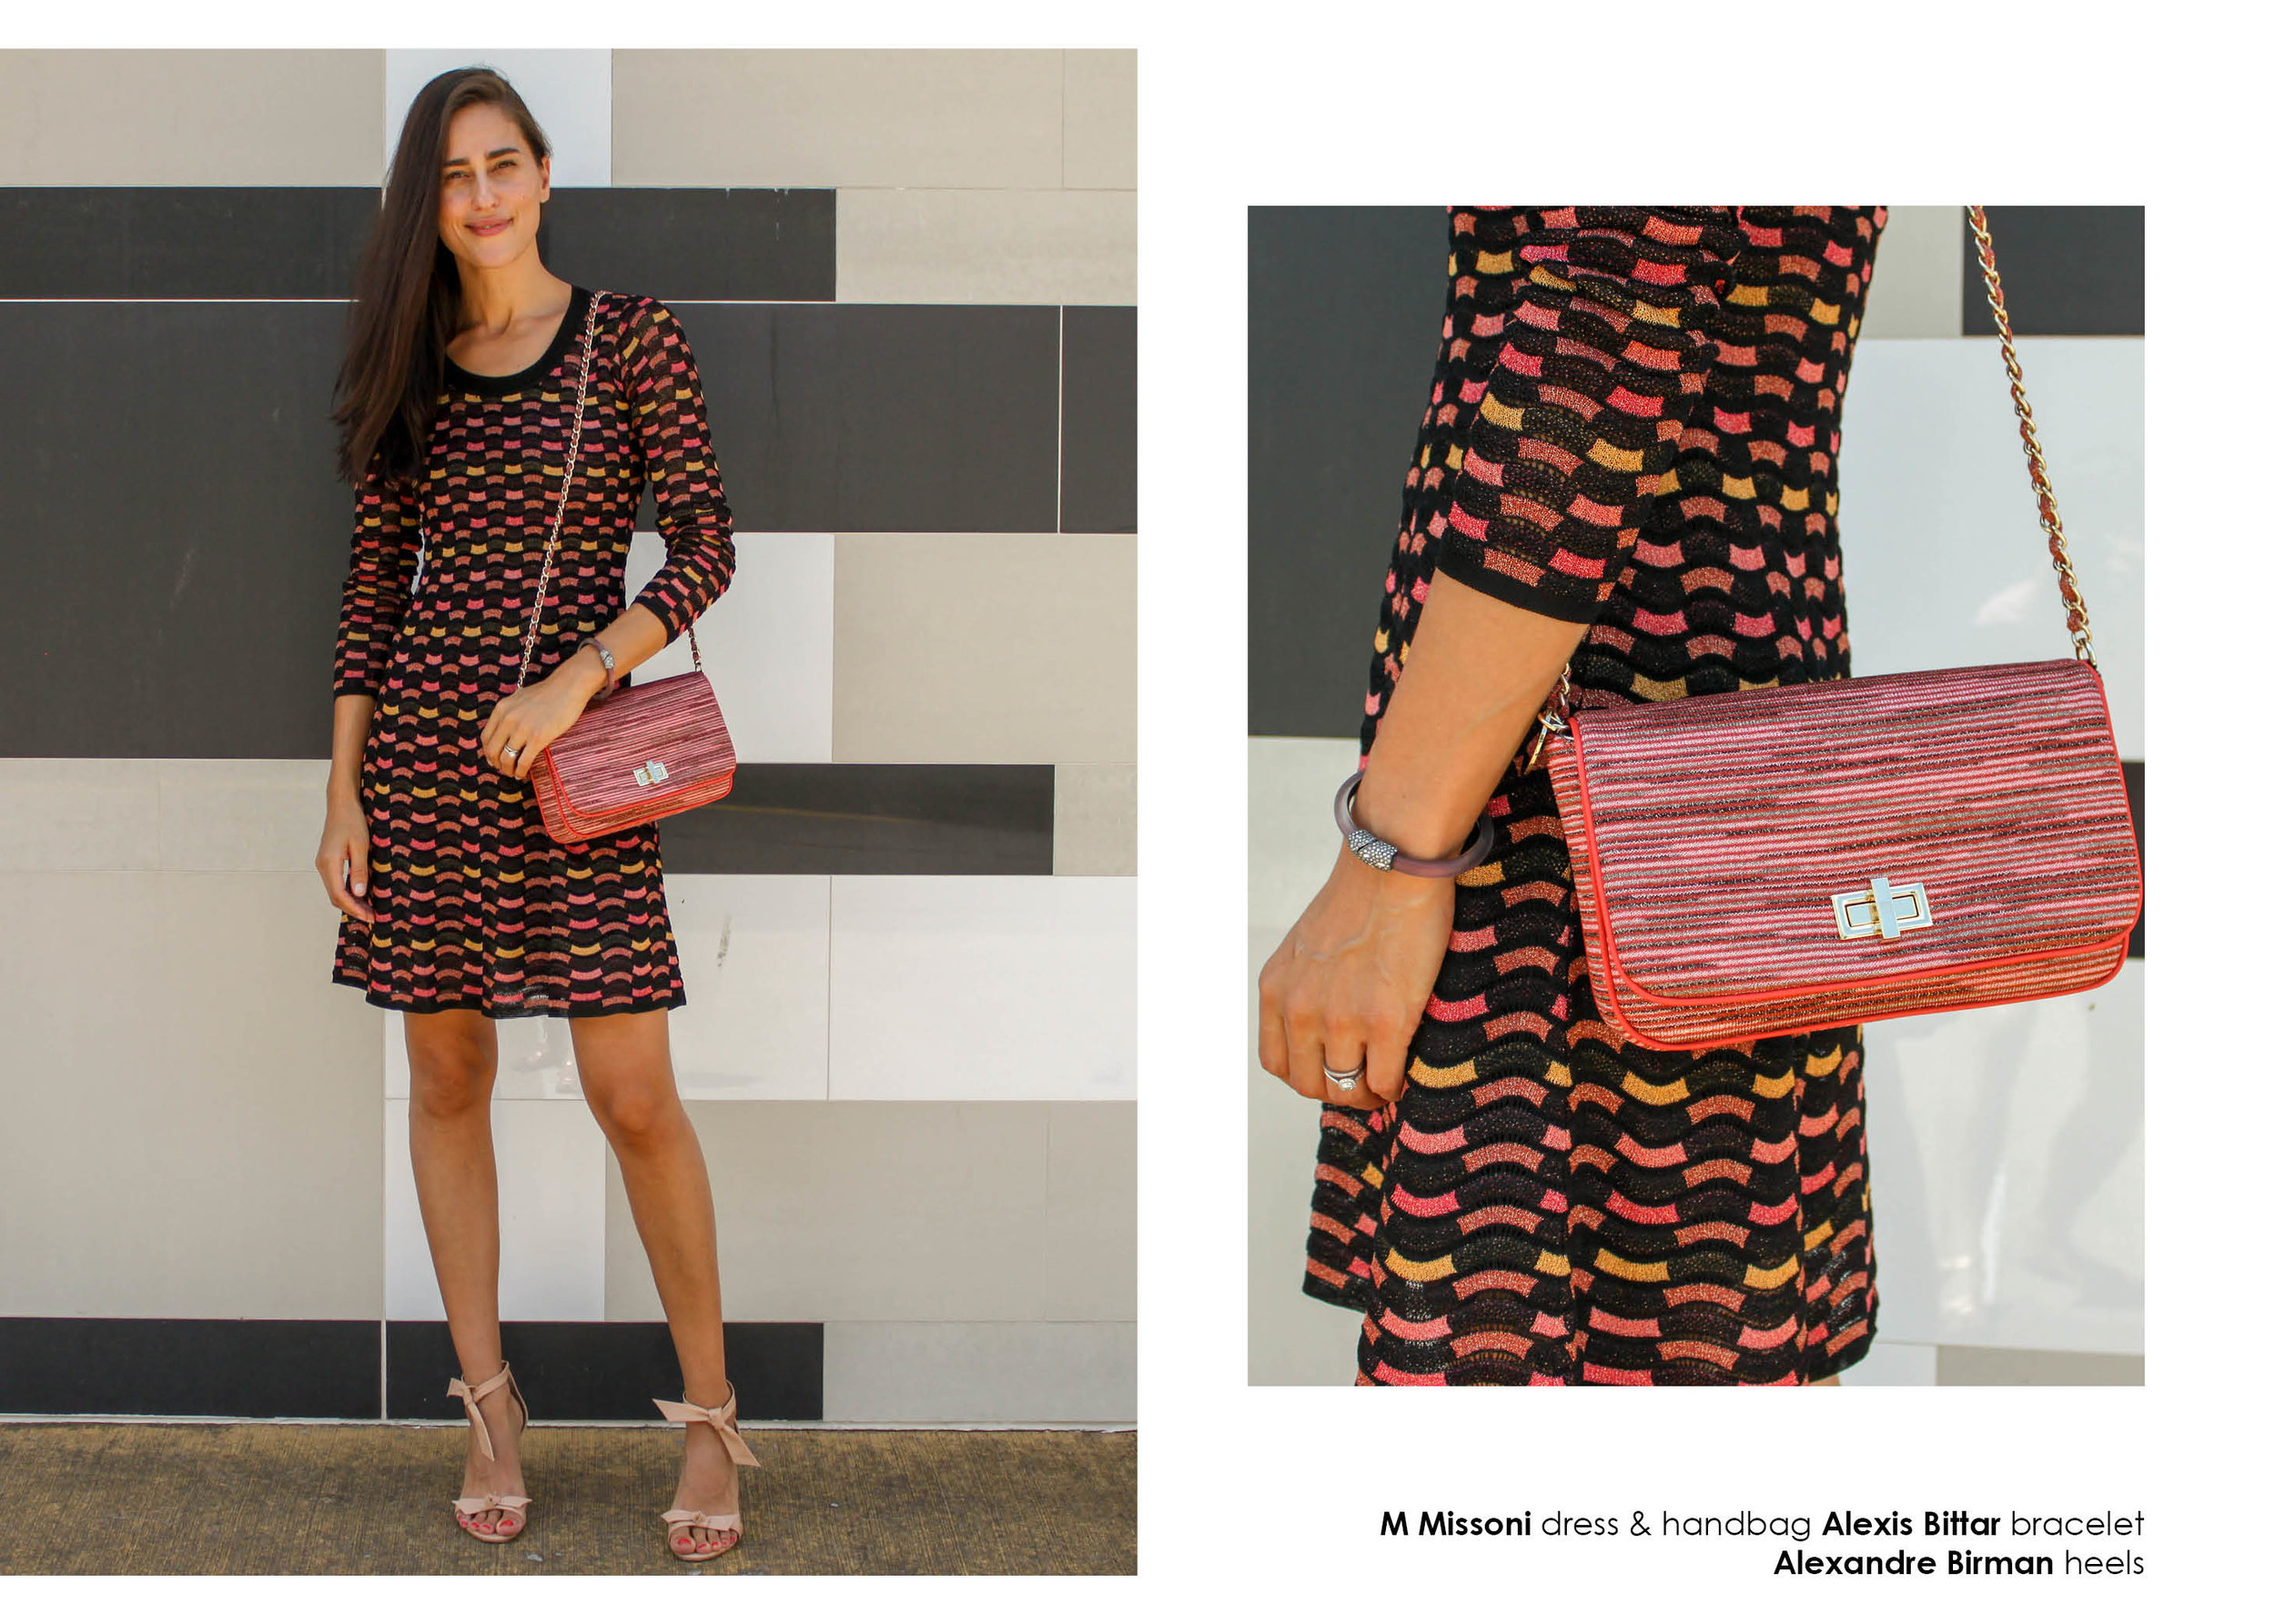 M Missoni-Feb19-newsletter-layout-5.jpg